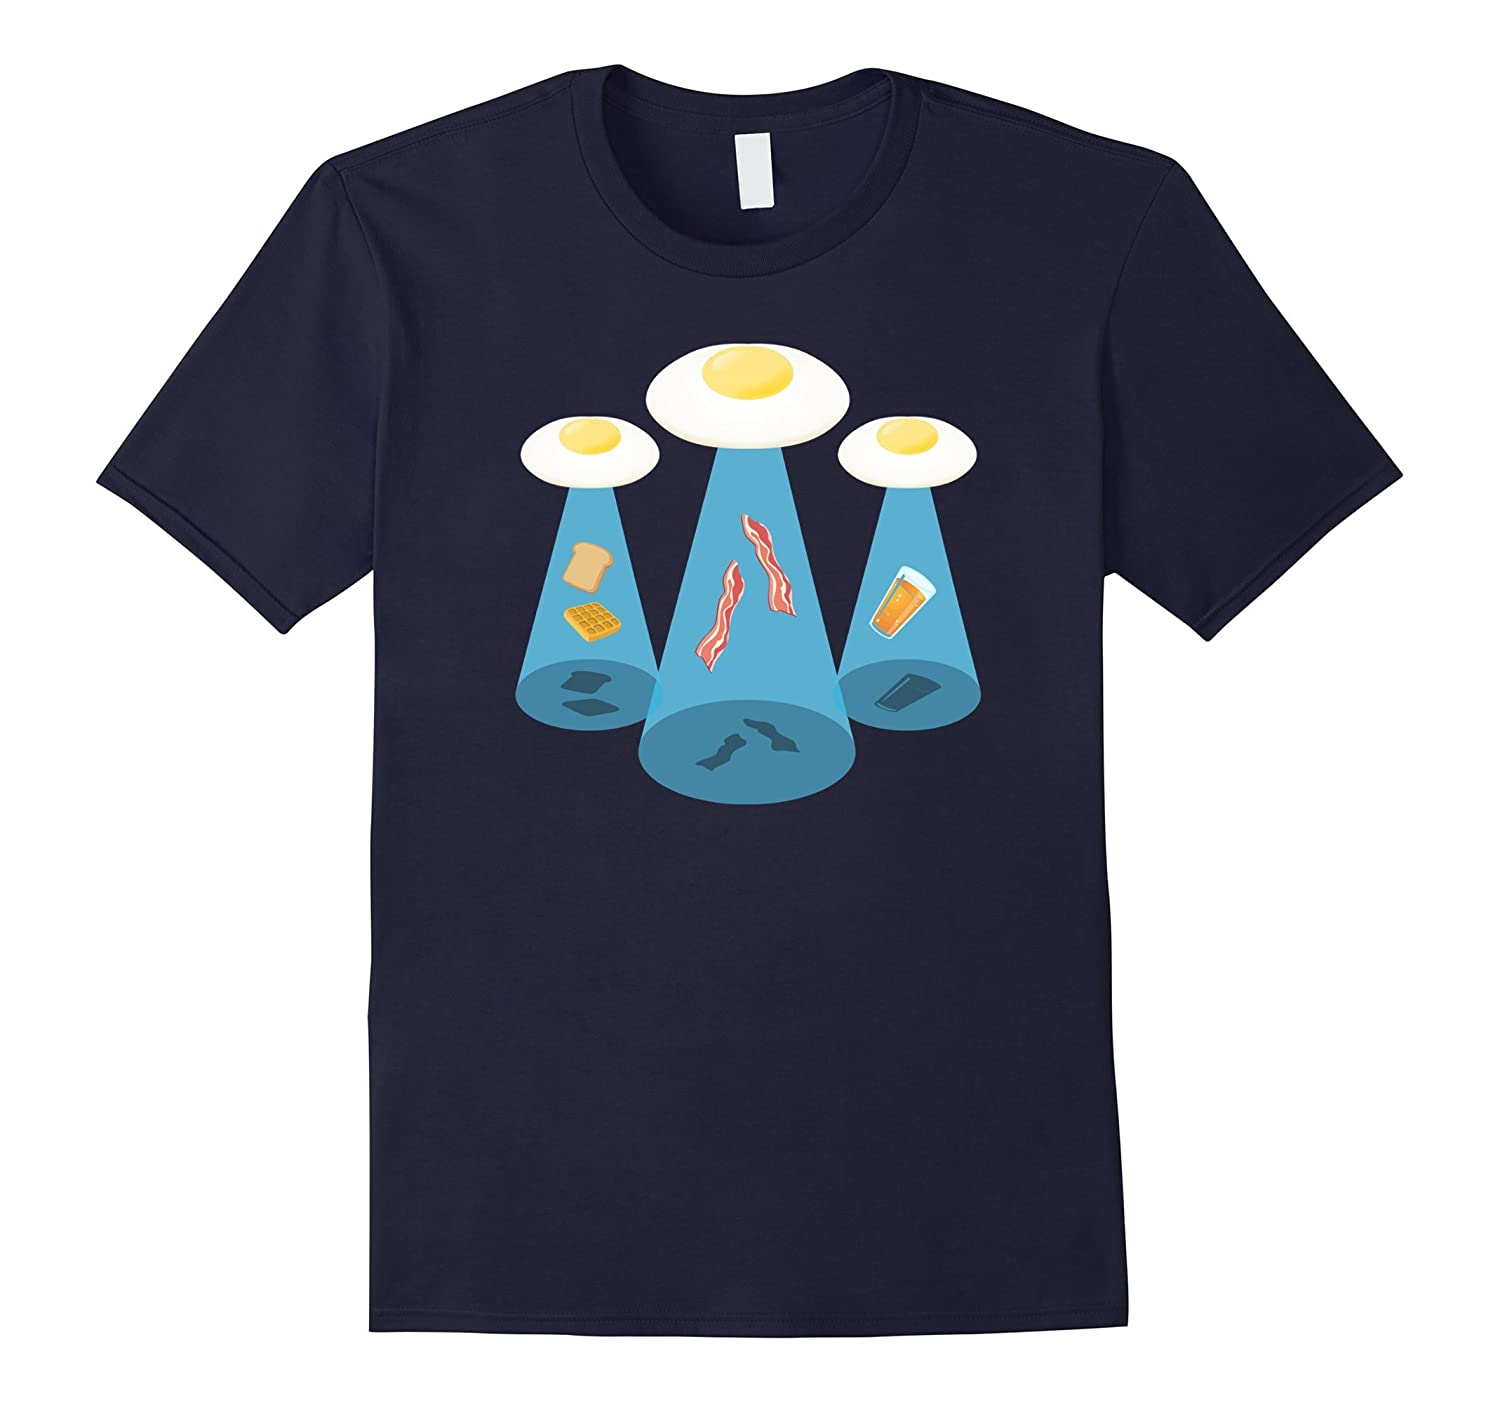 Alien Breakfast T-Shirt, Space UFO Breakfast Tee Apparel-FL